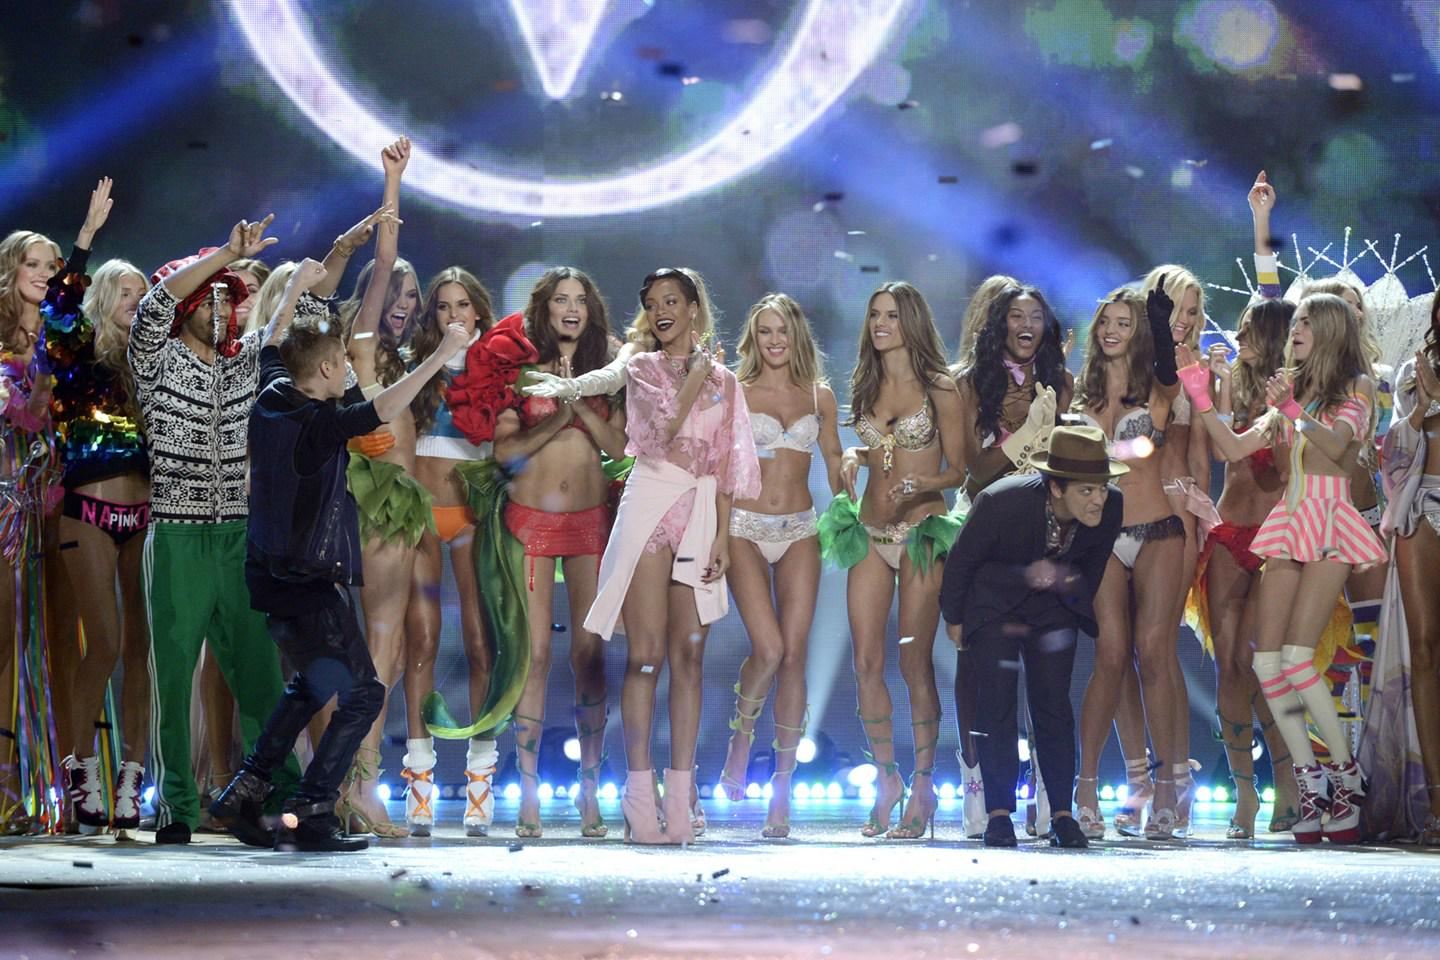 DID YOU SEE: The @VictoriasSecret 2015 show performers confirmed: http://t.co/ot1f7zJx0B http://t.co/6QFp994gyJ